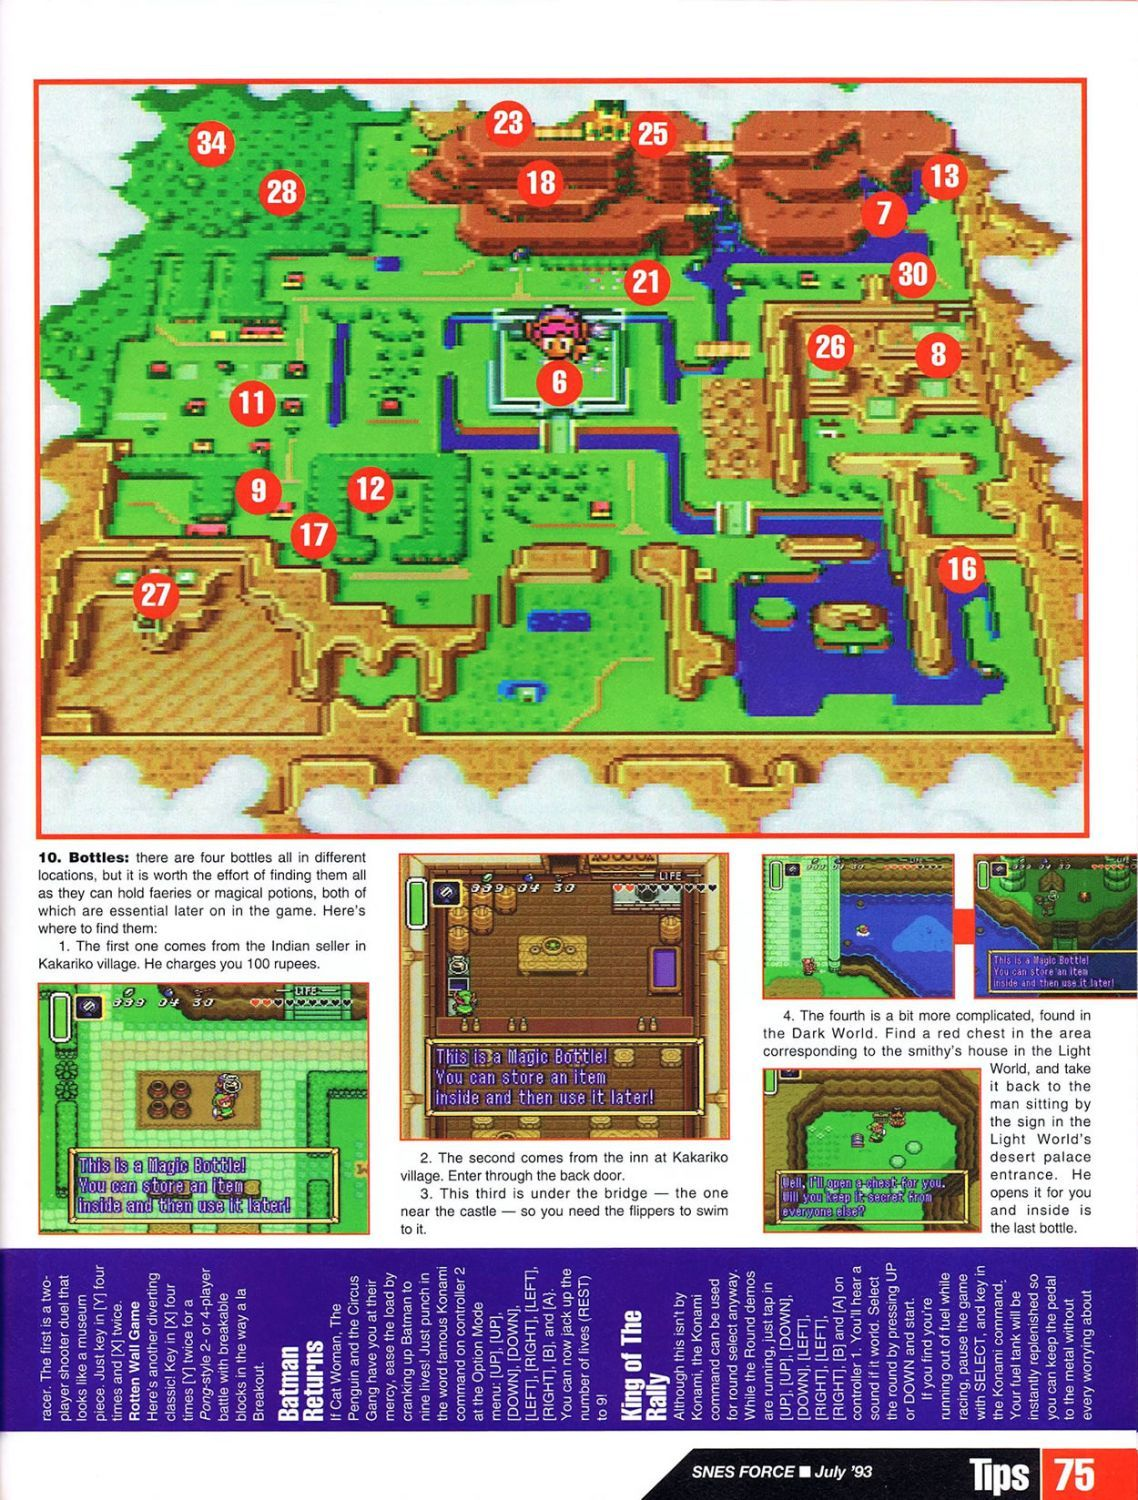 snes force issue 1 july 1993 tloz a link to the past guide part 1 rh pinterest com Scan 2 Go Monsters game guide pdf scans